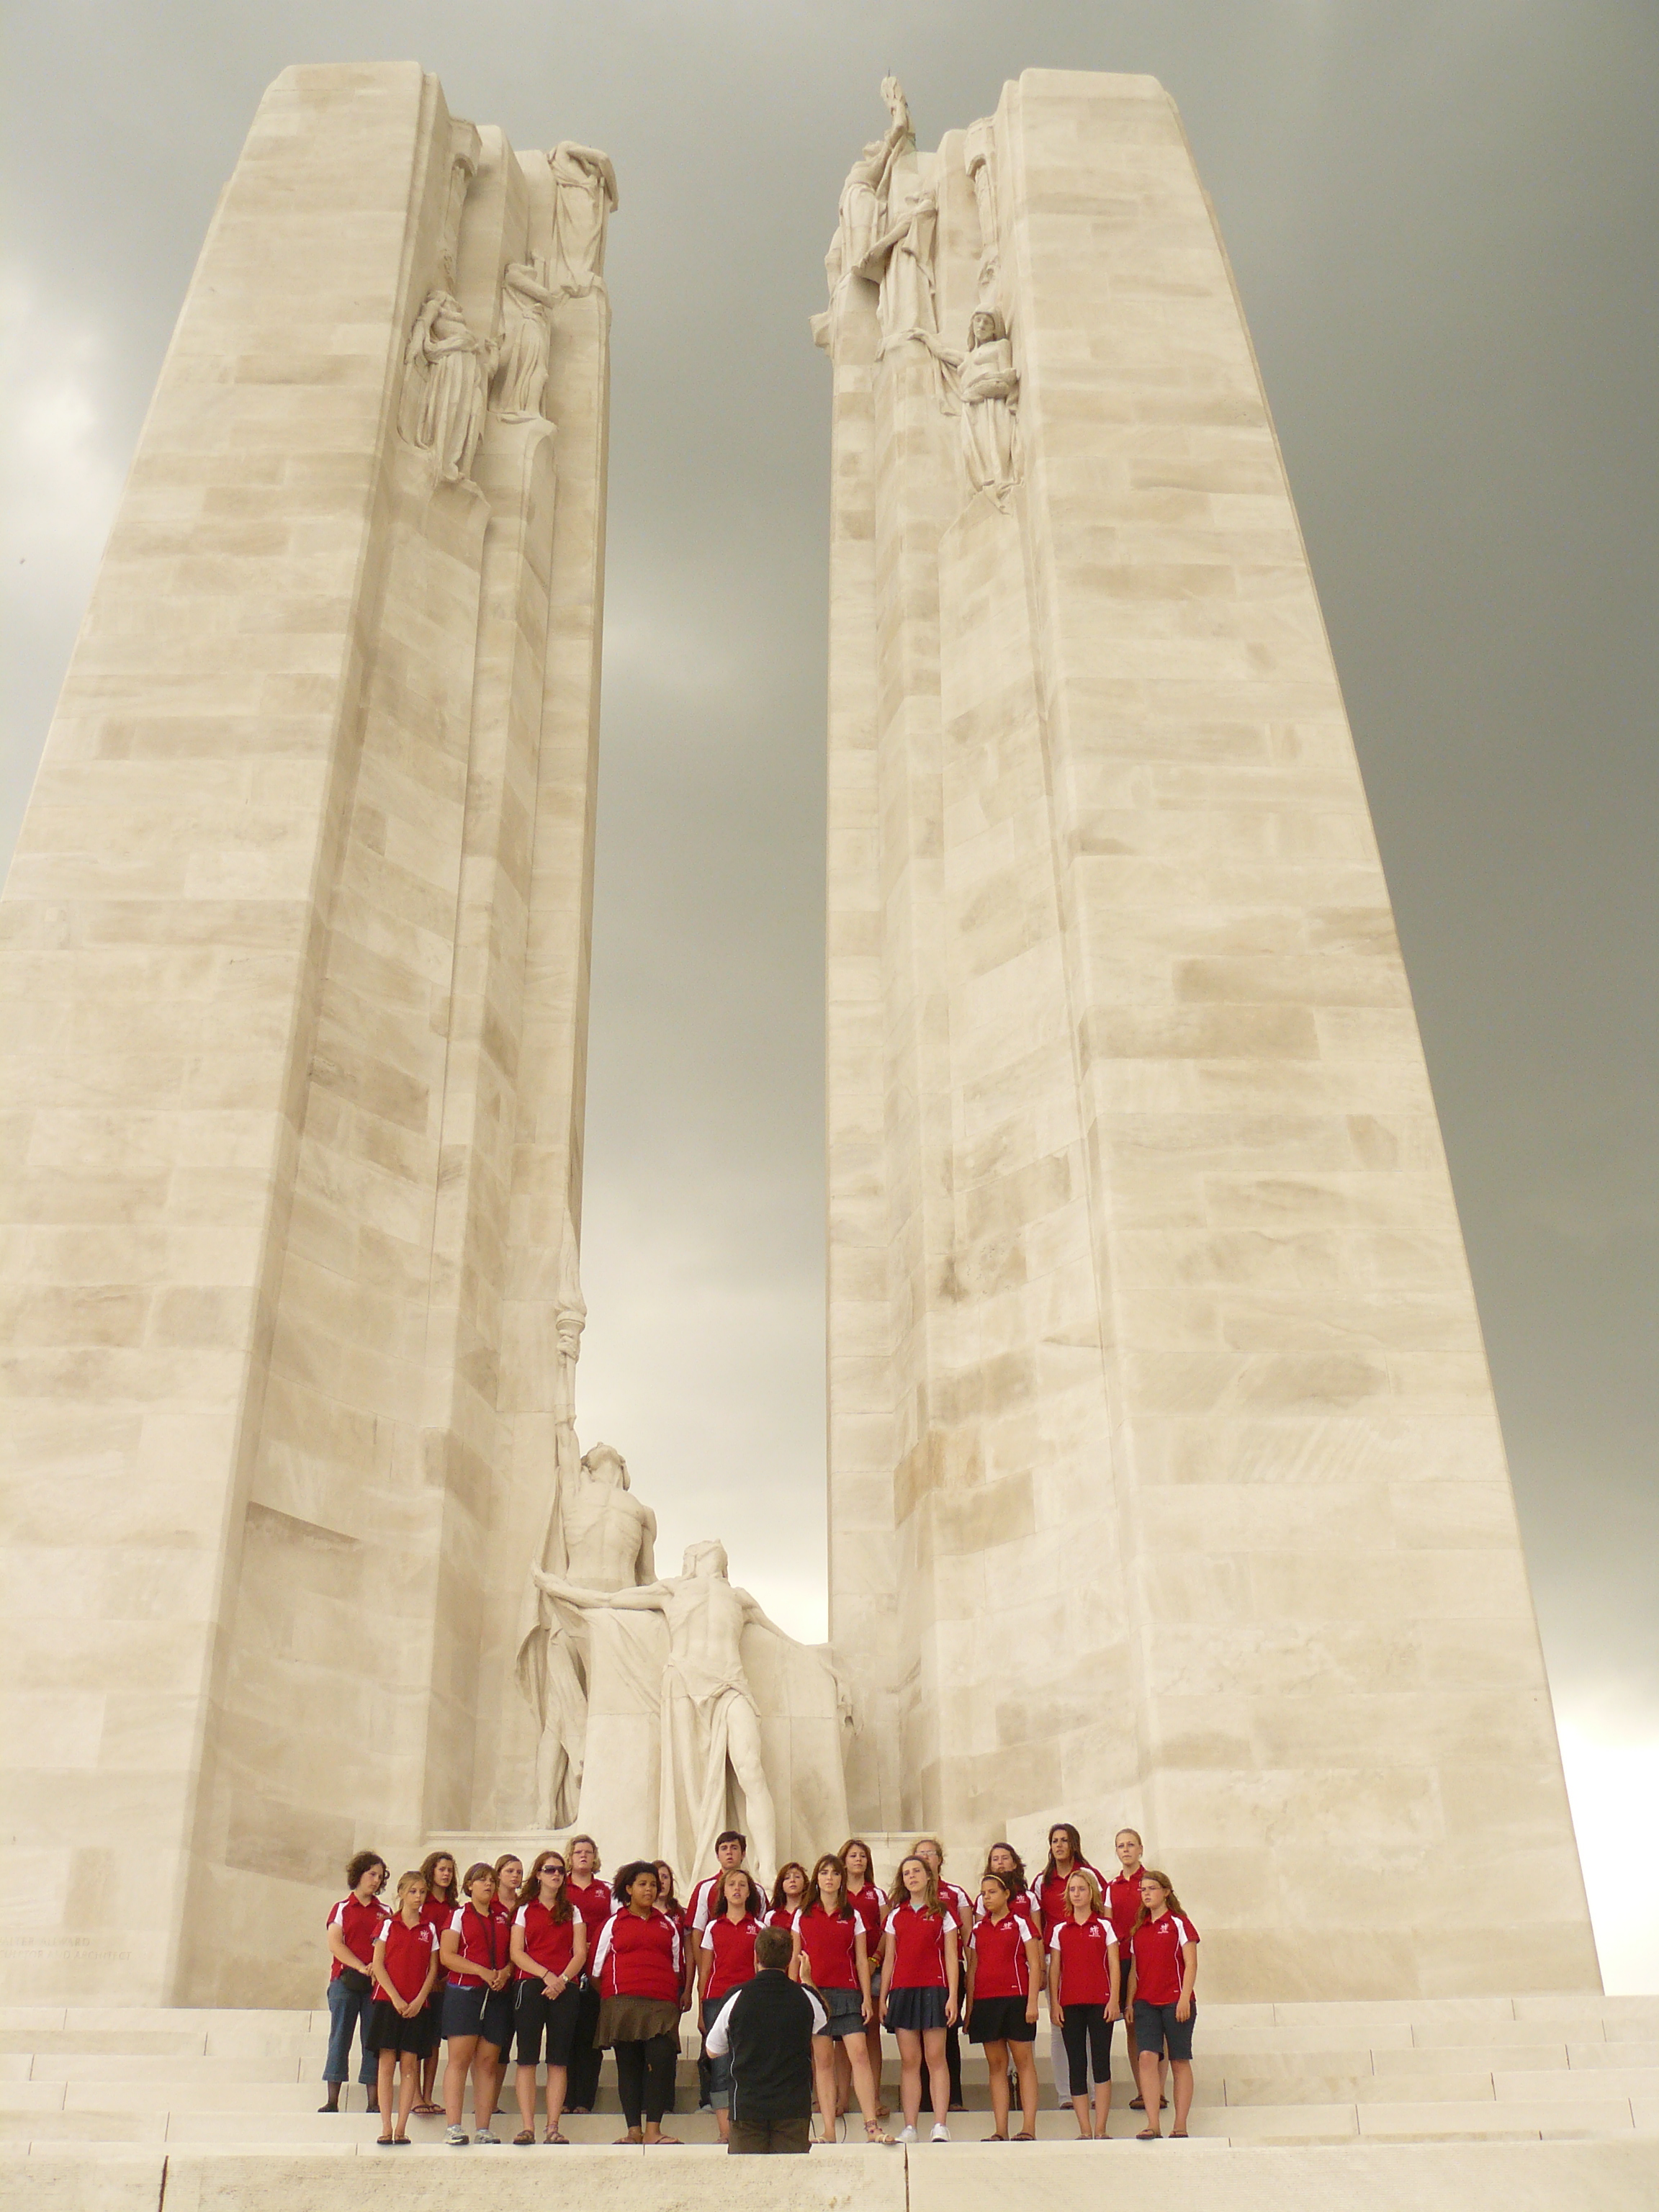 Performing at Vimy Ridge. One of the most moving days of the tour.